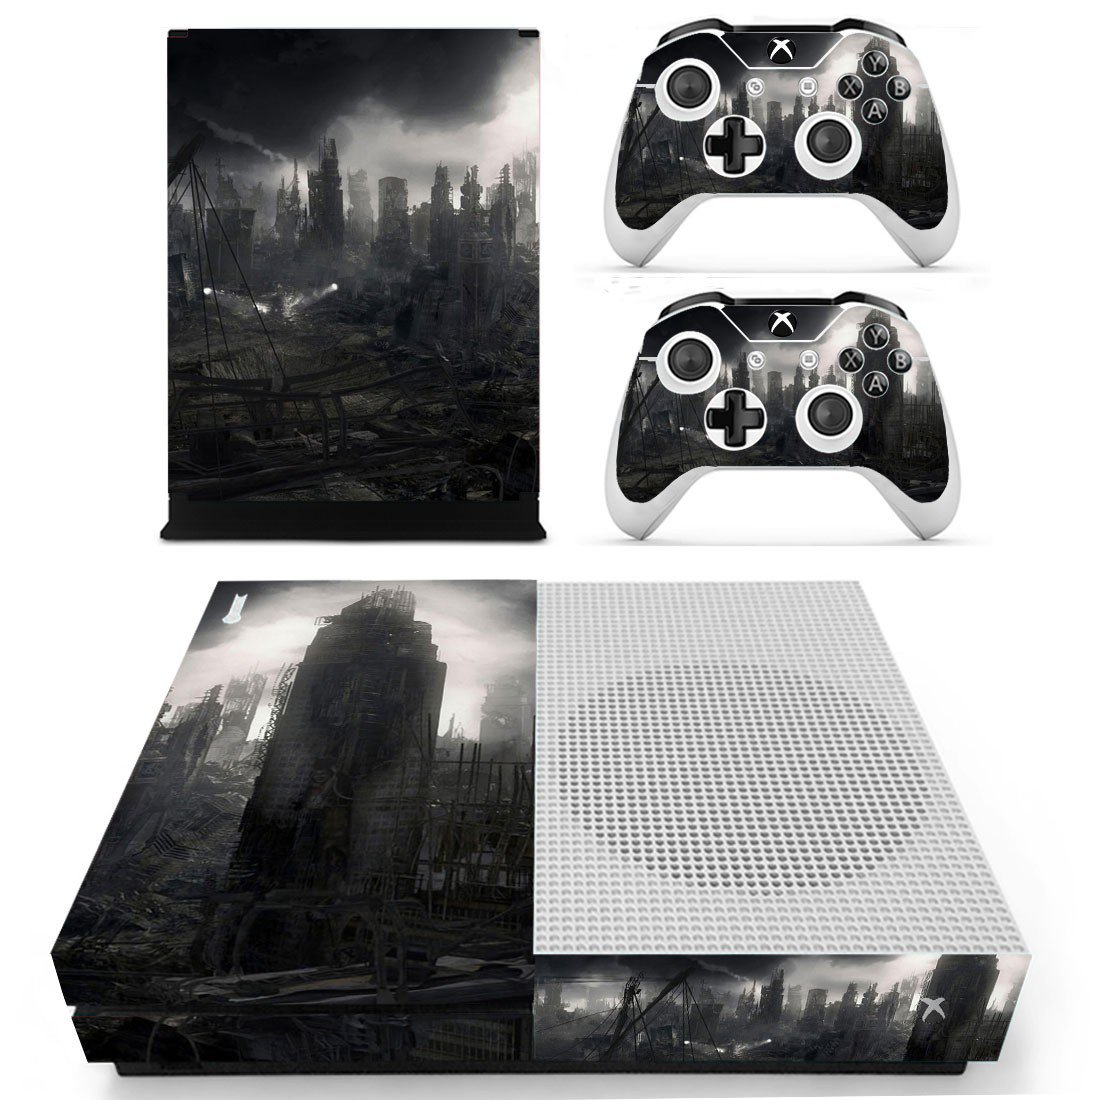 Destruction City skin decal for Xbox one S console and controllers